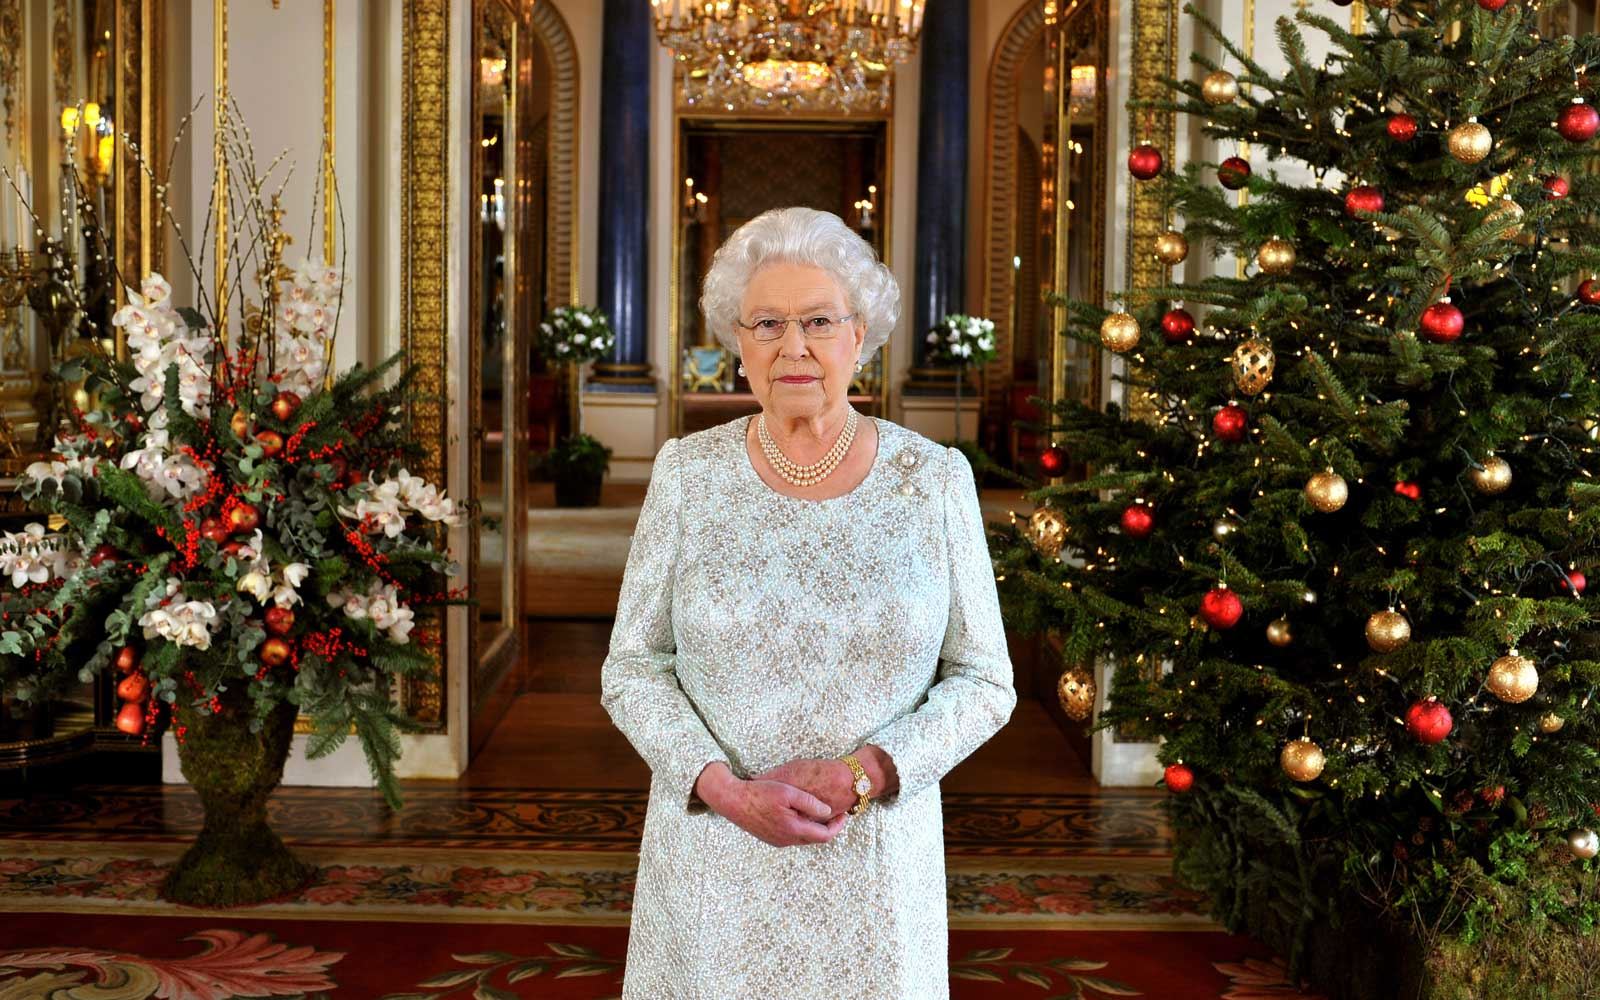 Queen Elizabeth II records her Christmas message to the Commonwealth